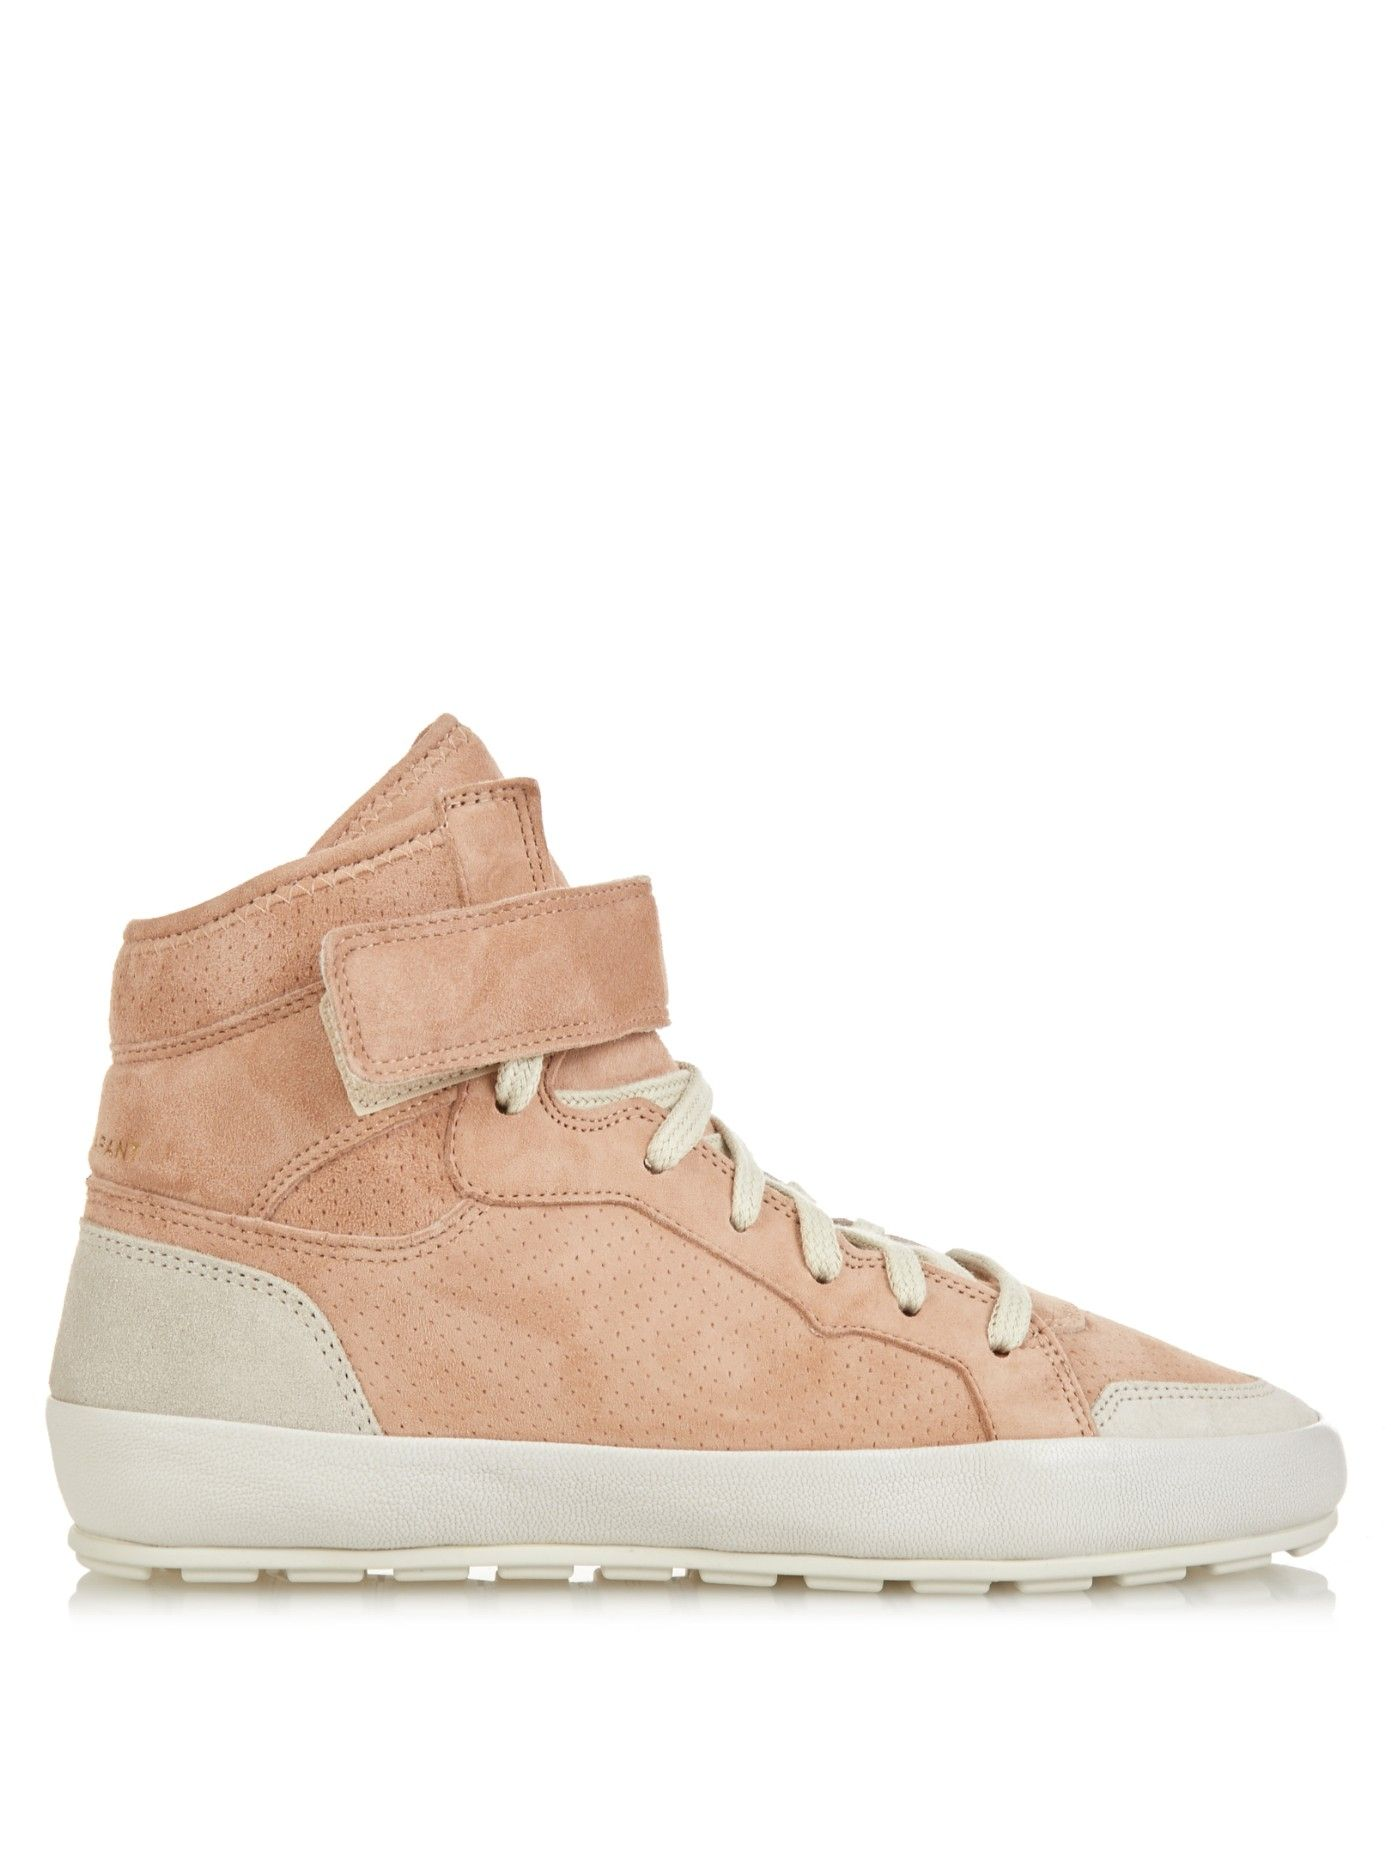 Bessy Hip Hop suede high-top trainers | Isabel Marant | MATCHESFASHION.COM UK